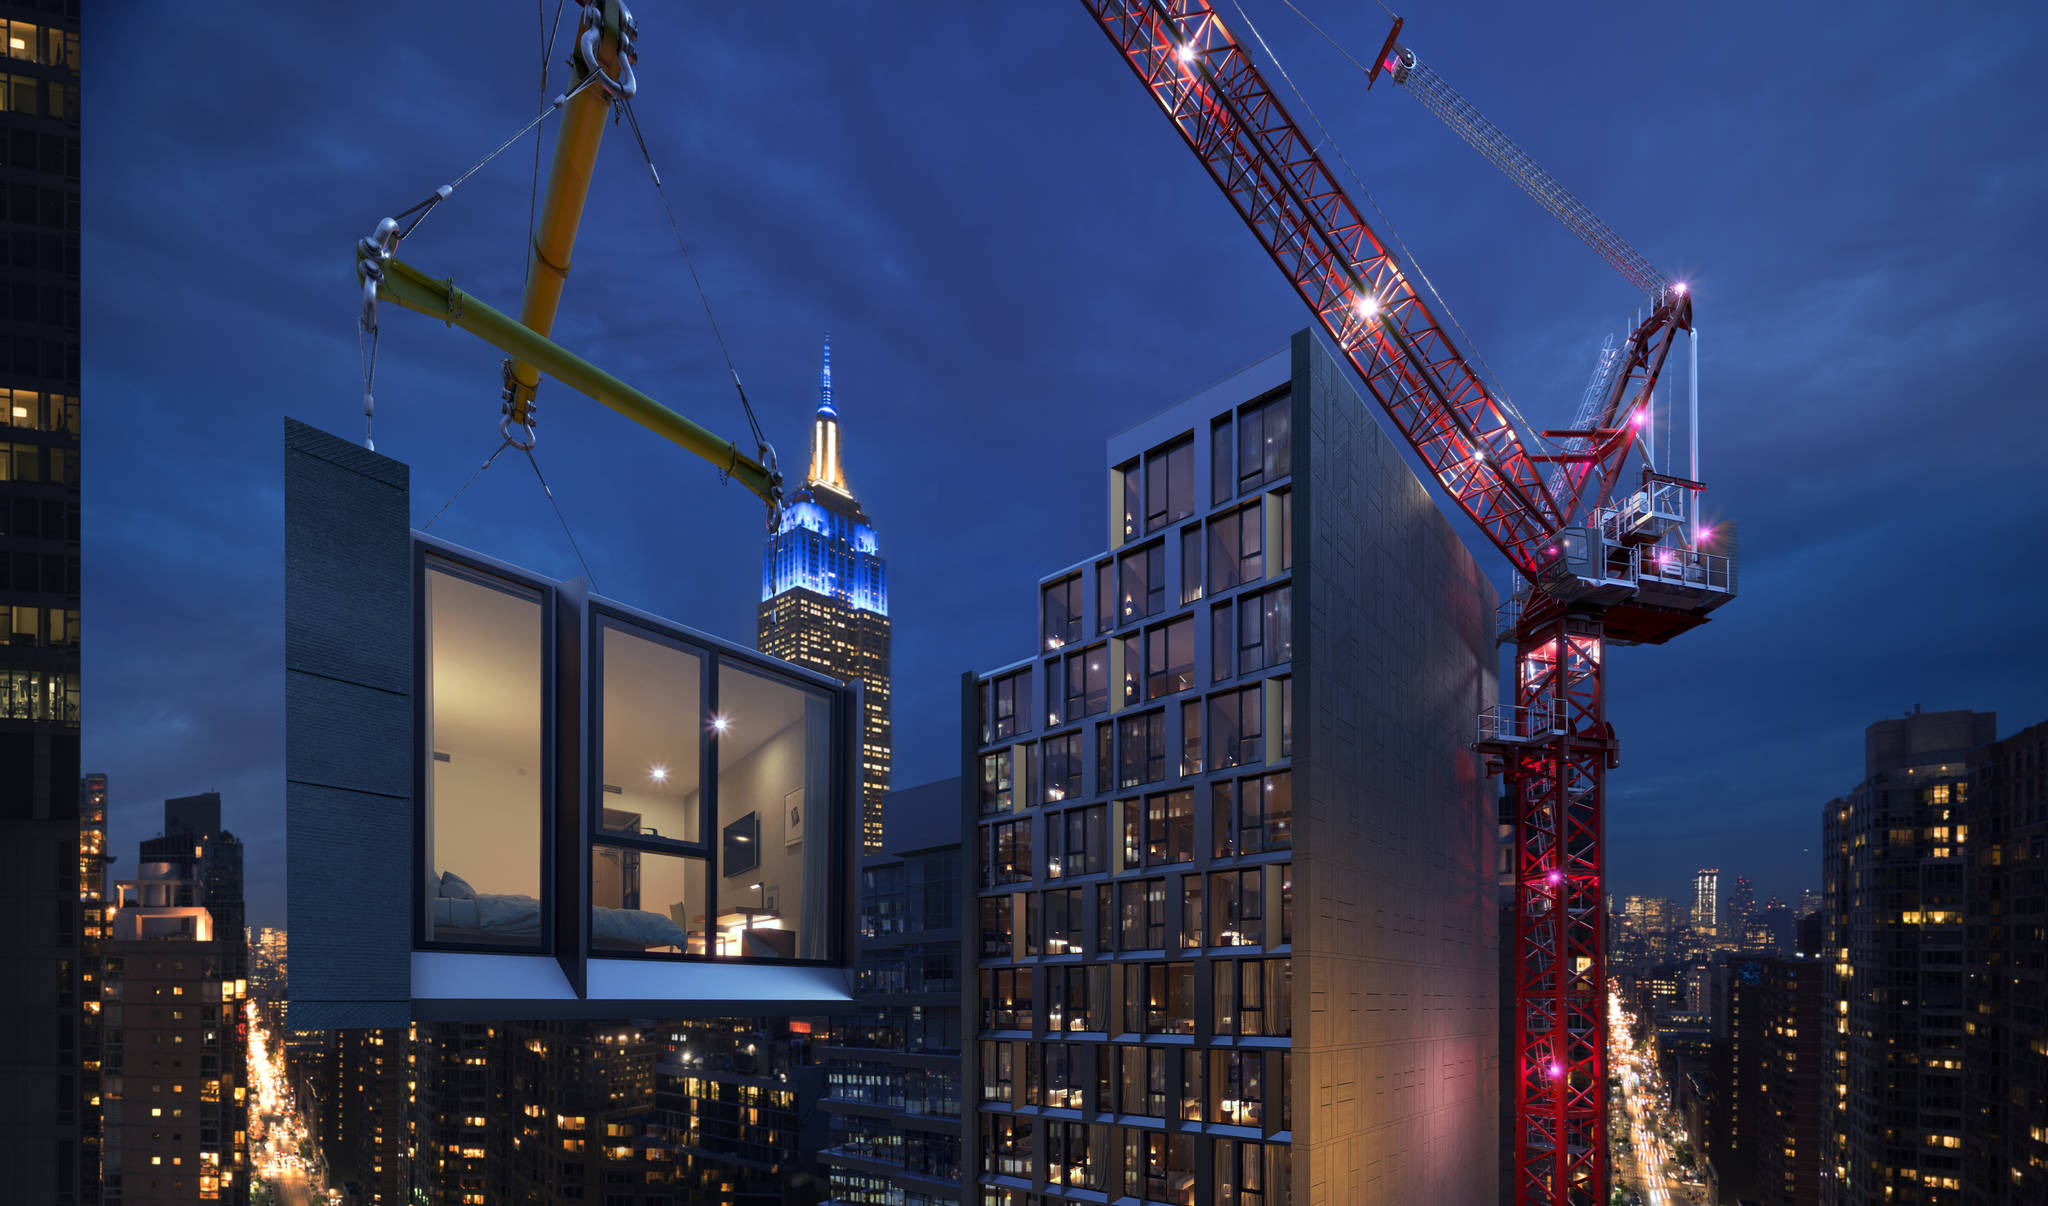 The world's future tallest modular hotel, AC Hotel New York NoMad (Design and photo credit: Danny Forster & Architecture)